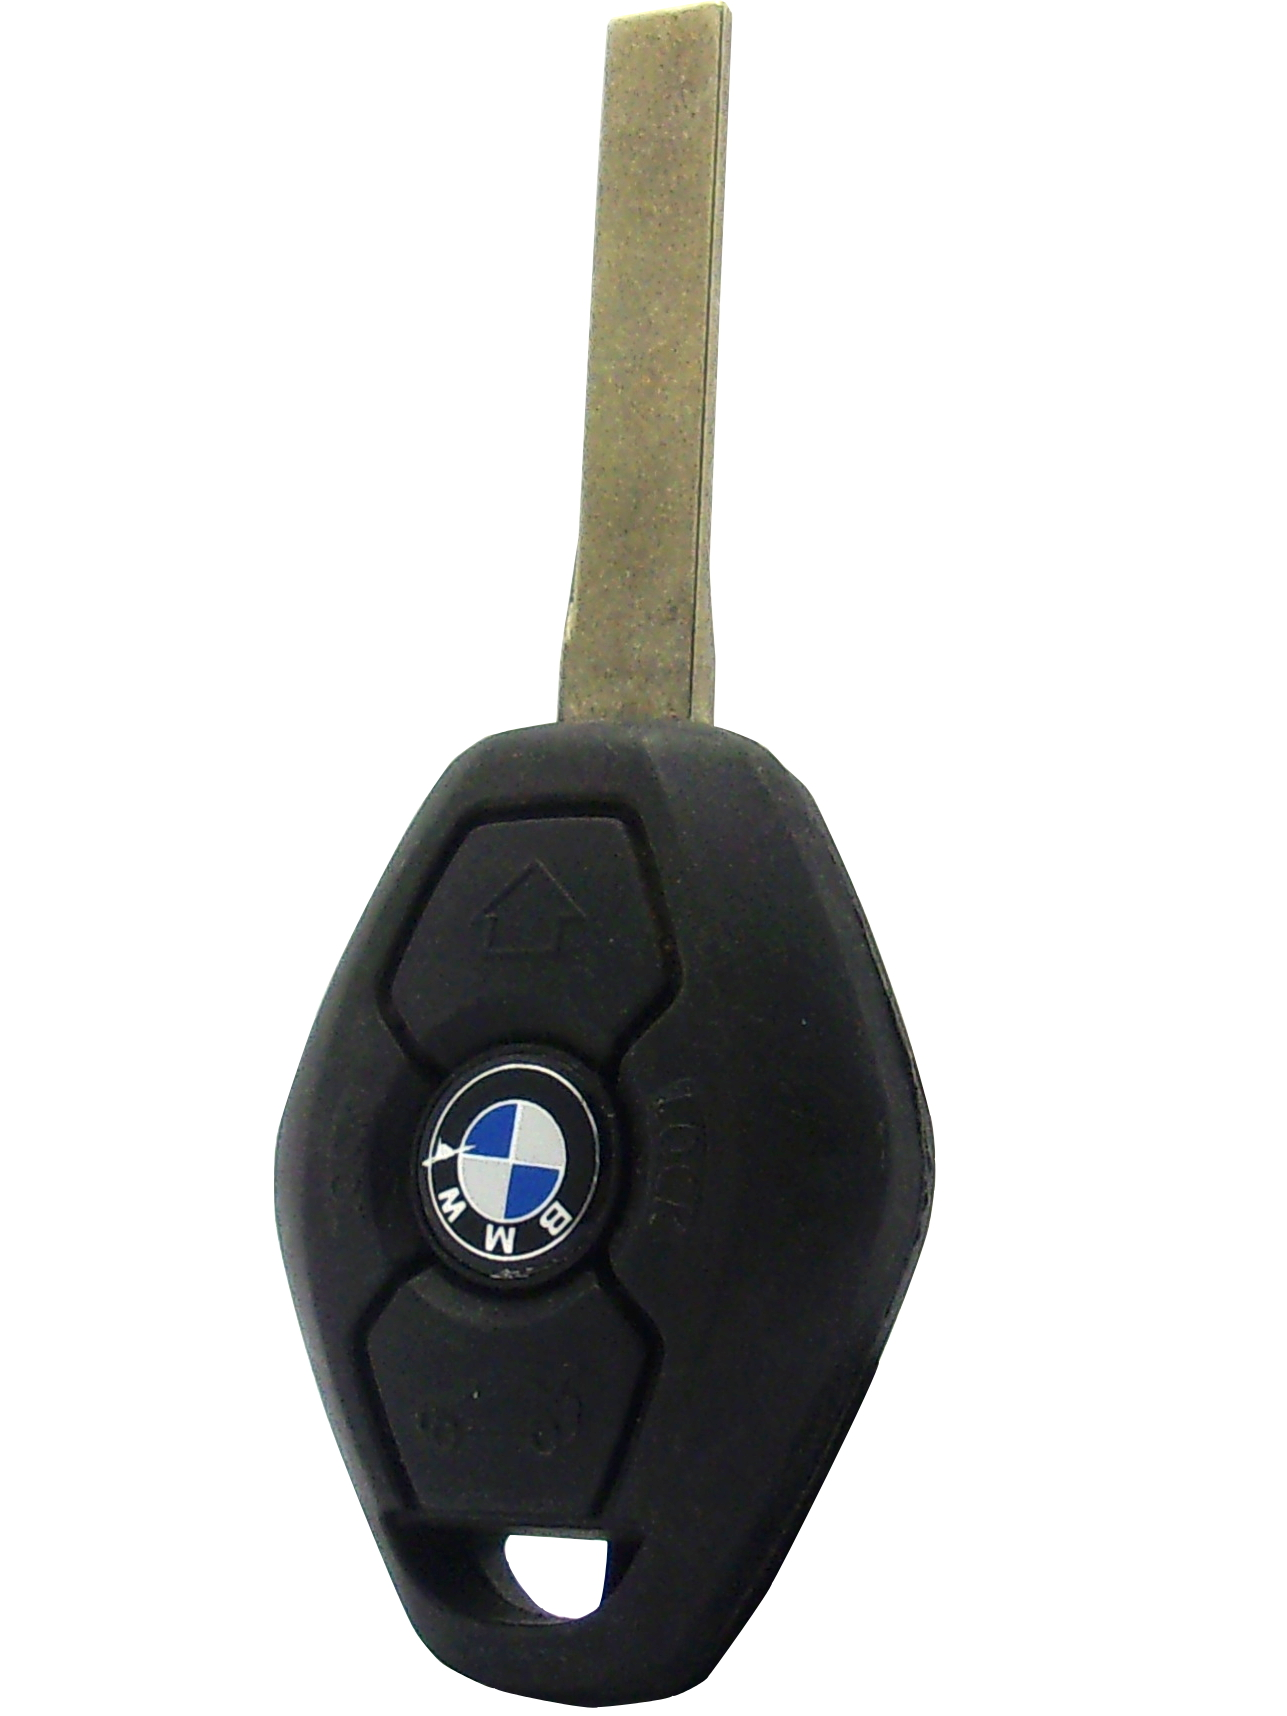 BMW Remote & Key Combo - 3 Button  FCCID: LX8 FZV